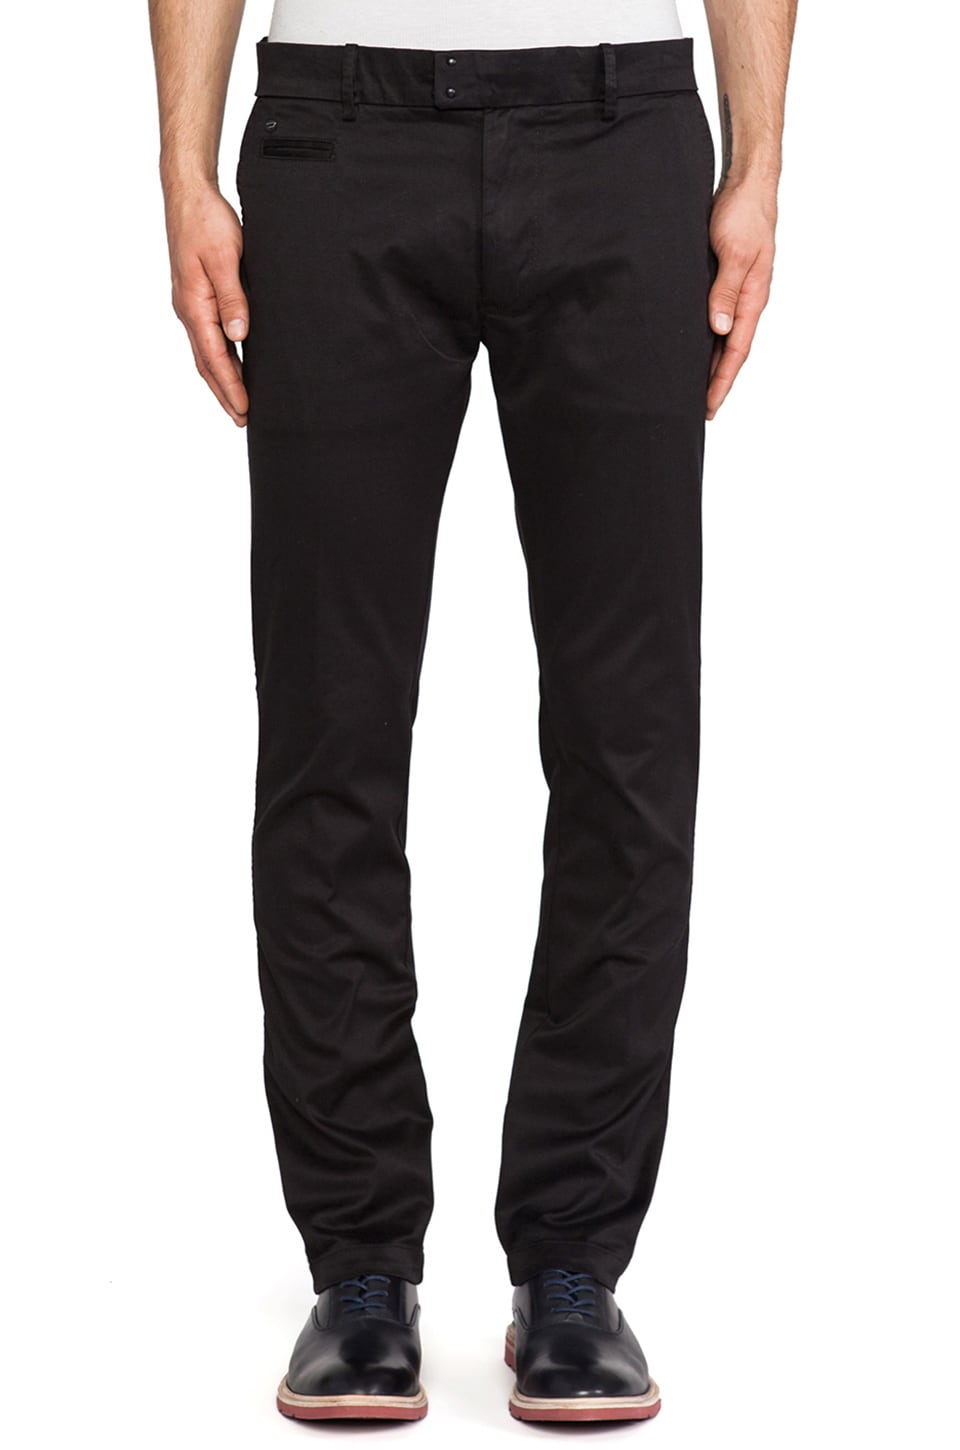 Diesel Chi-Tight Pant in Black